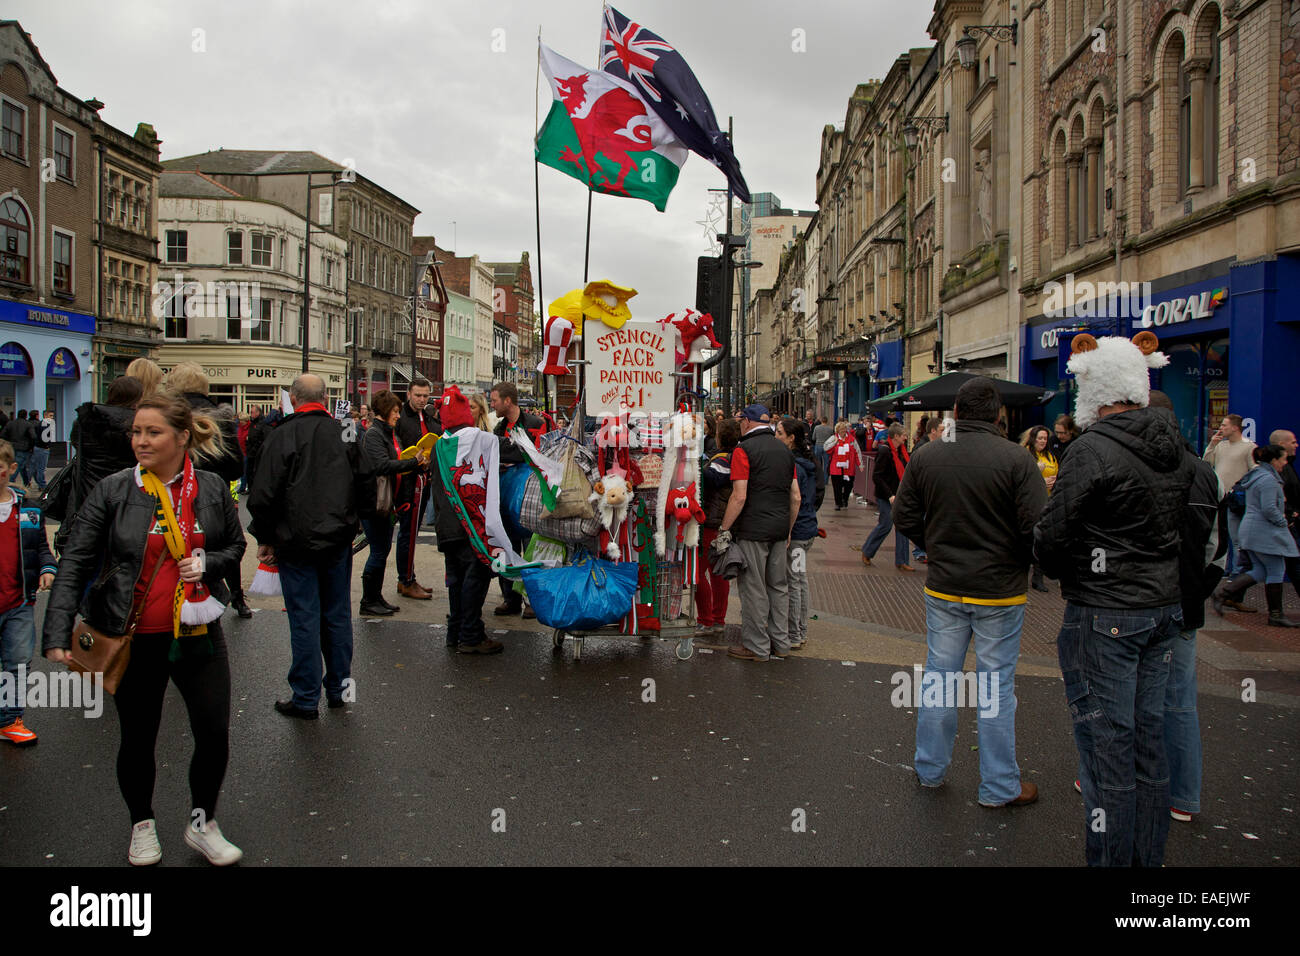 Street vendor selling souvenirs to rugby fans on the streets of Cardiff before the Wales v Australia match - Stock Image